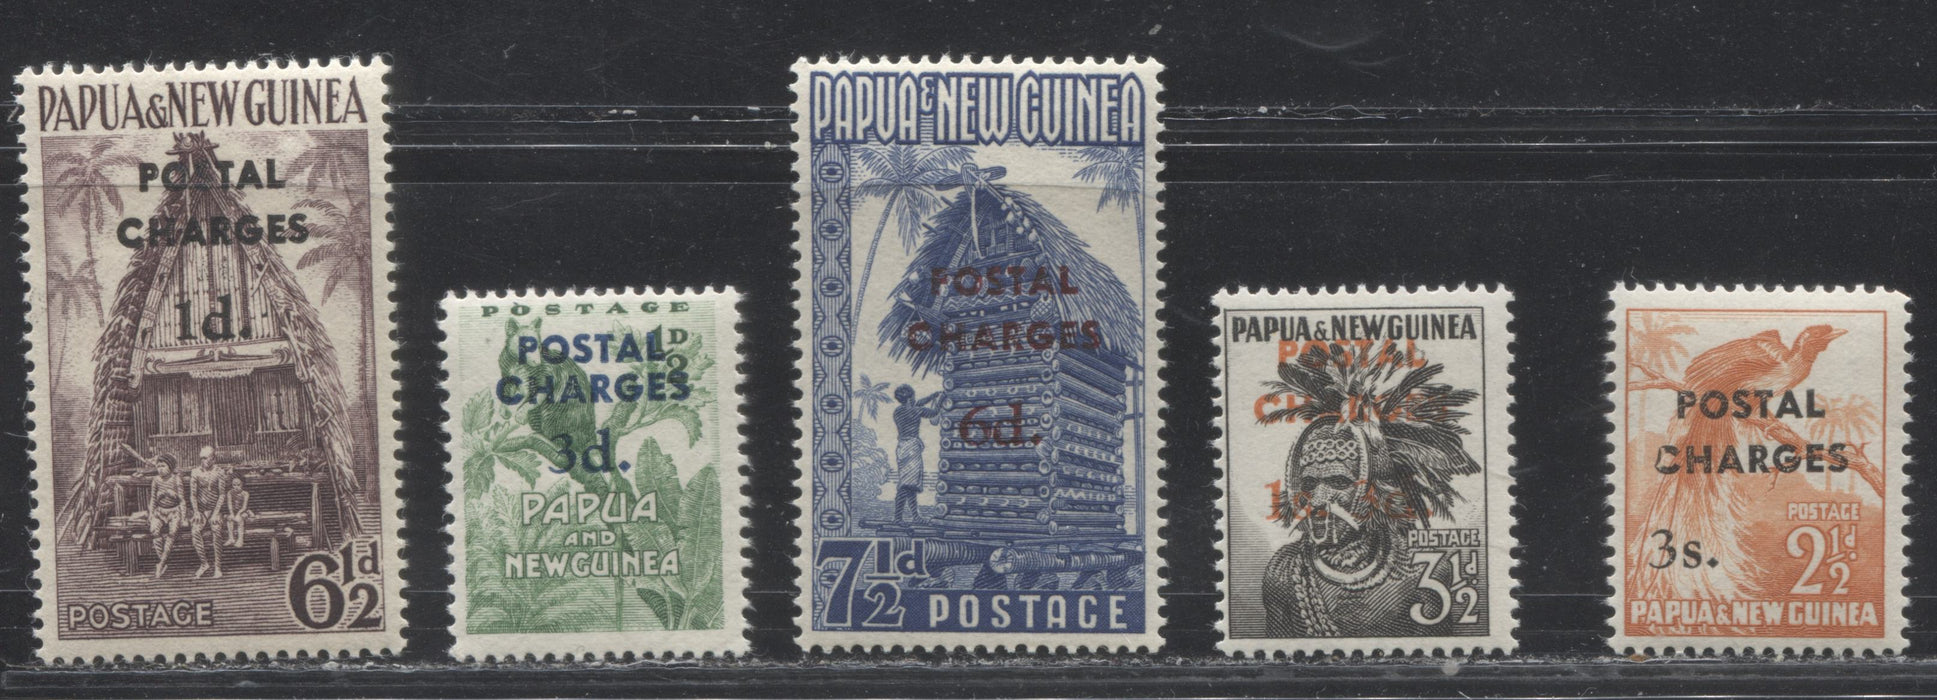 Papua New Guinea #J1-J5 1960 Postage Due Overprints on 1952-58 Definitives, a Mostly VFNH Complete Set on Cream Paper